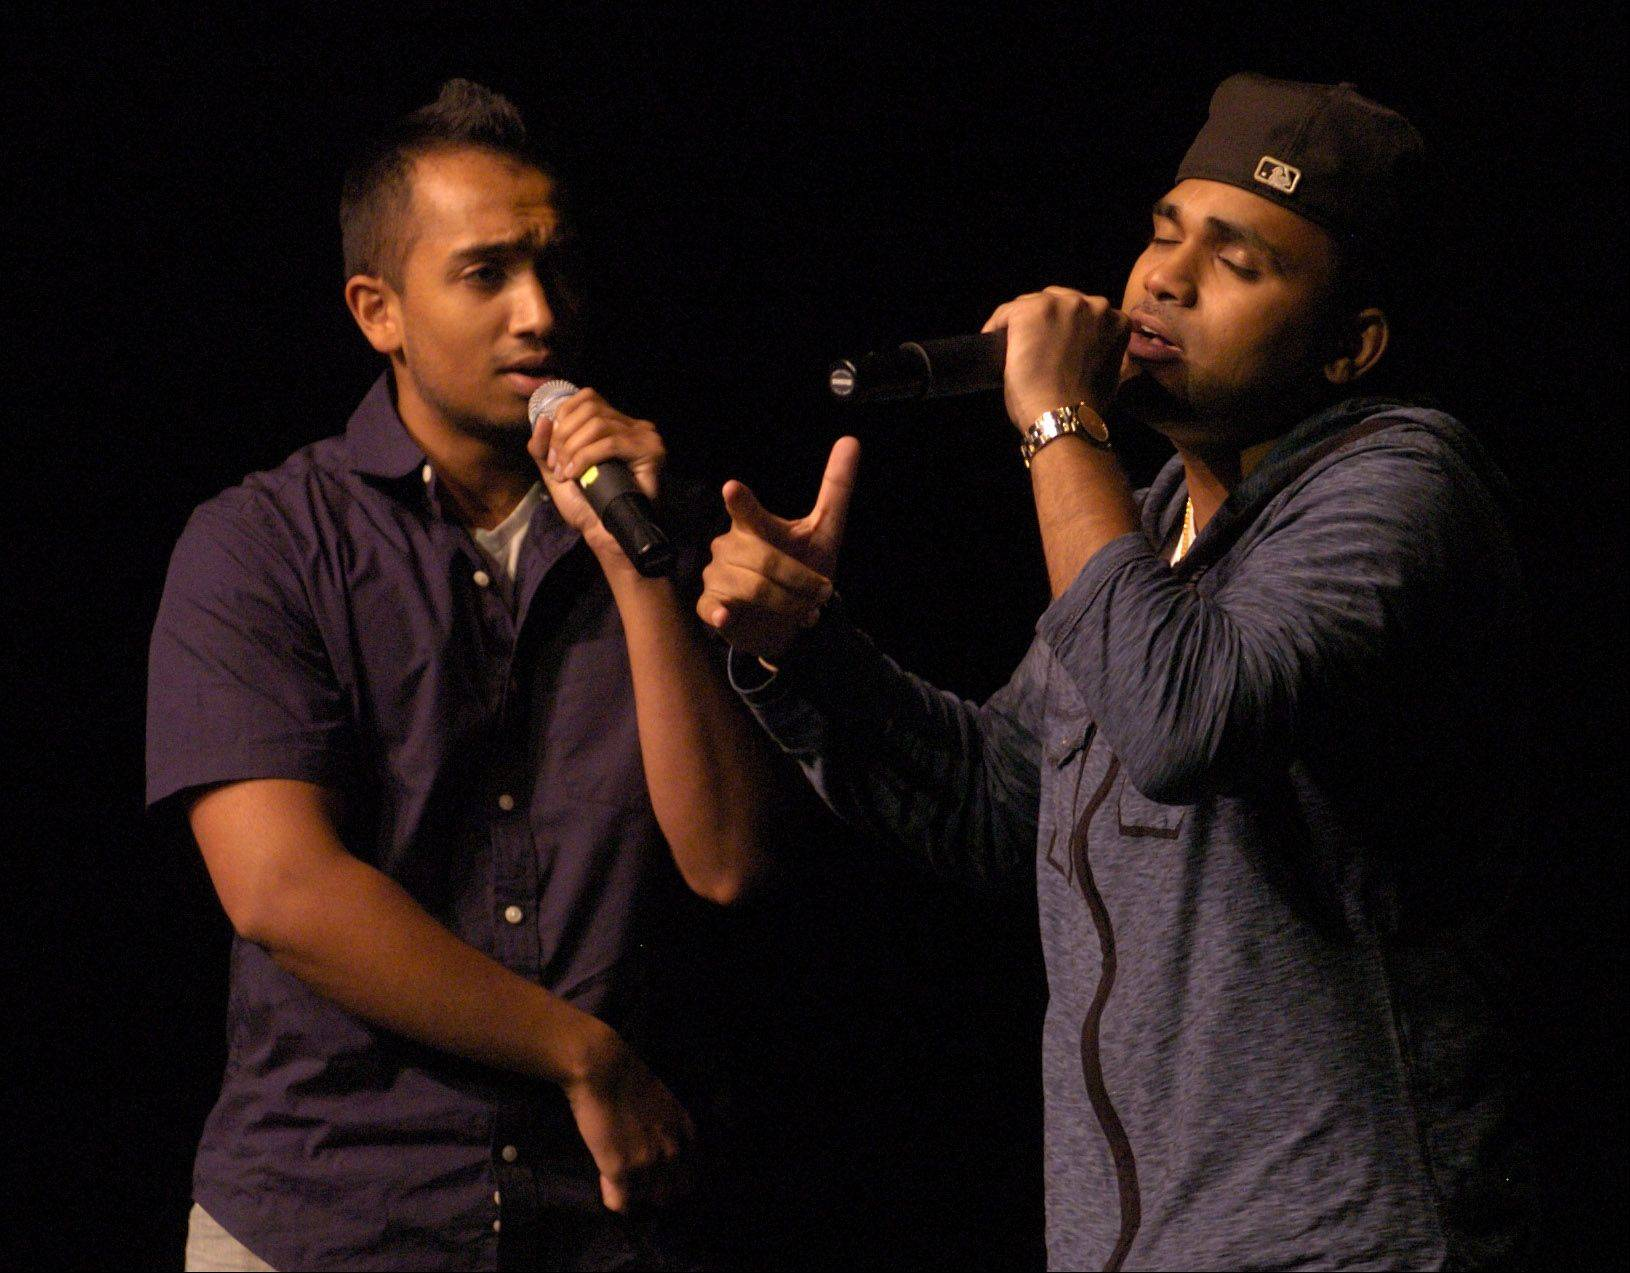 Shawn Kurian of Wheeling, left, and Sanu John of Skokie doing a two-man accapela during Suburban Chicago's Got Talent at the Metropolis Performing Arts Centre.